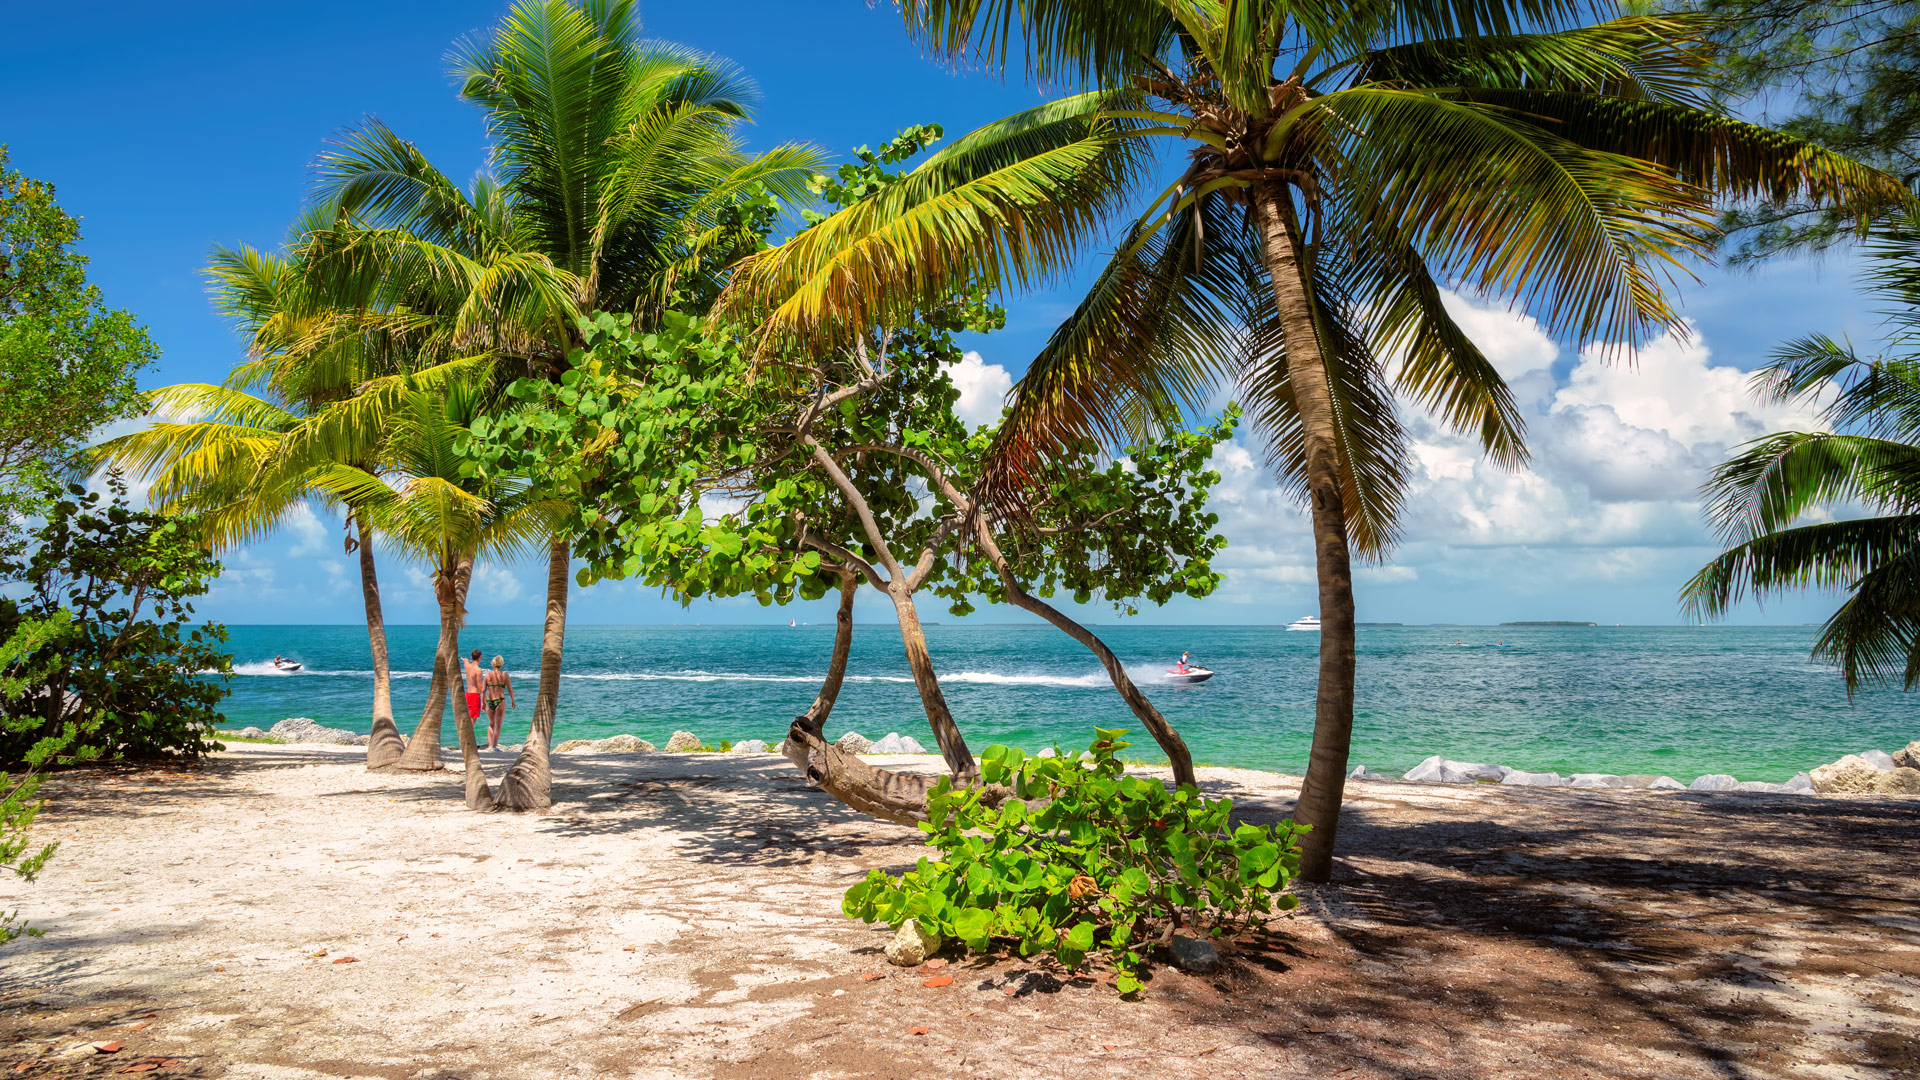 Key West Hotels & Vacation Planning With